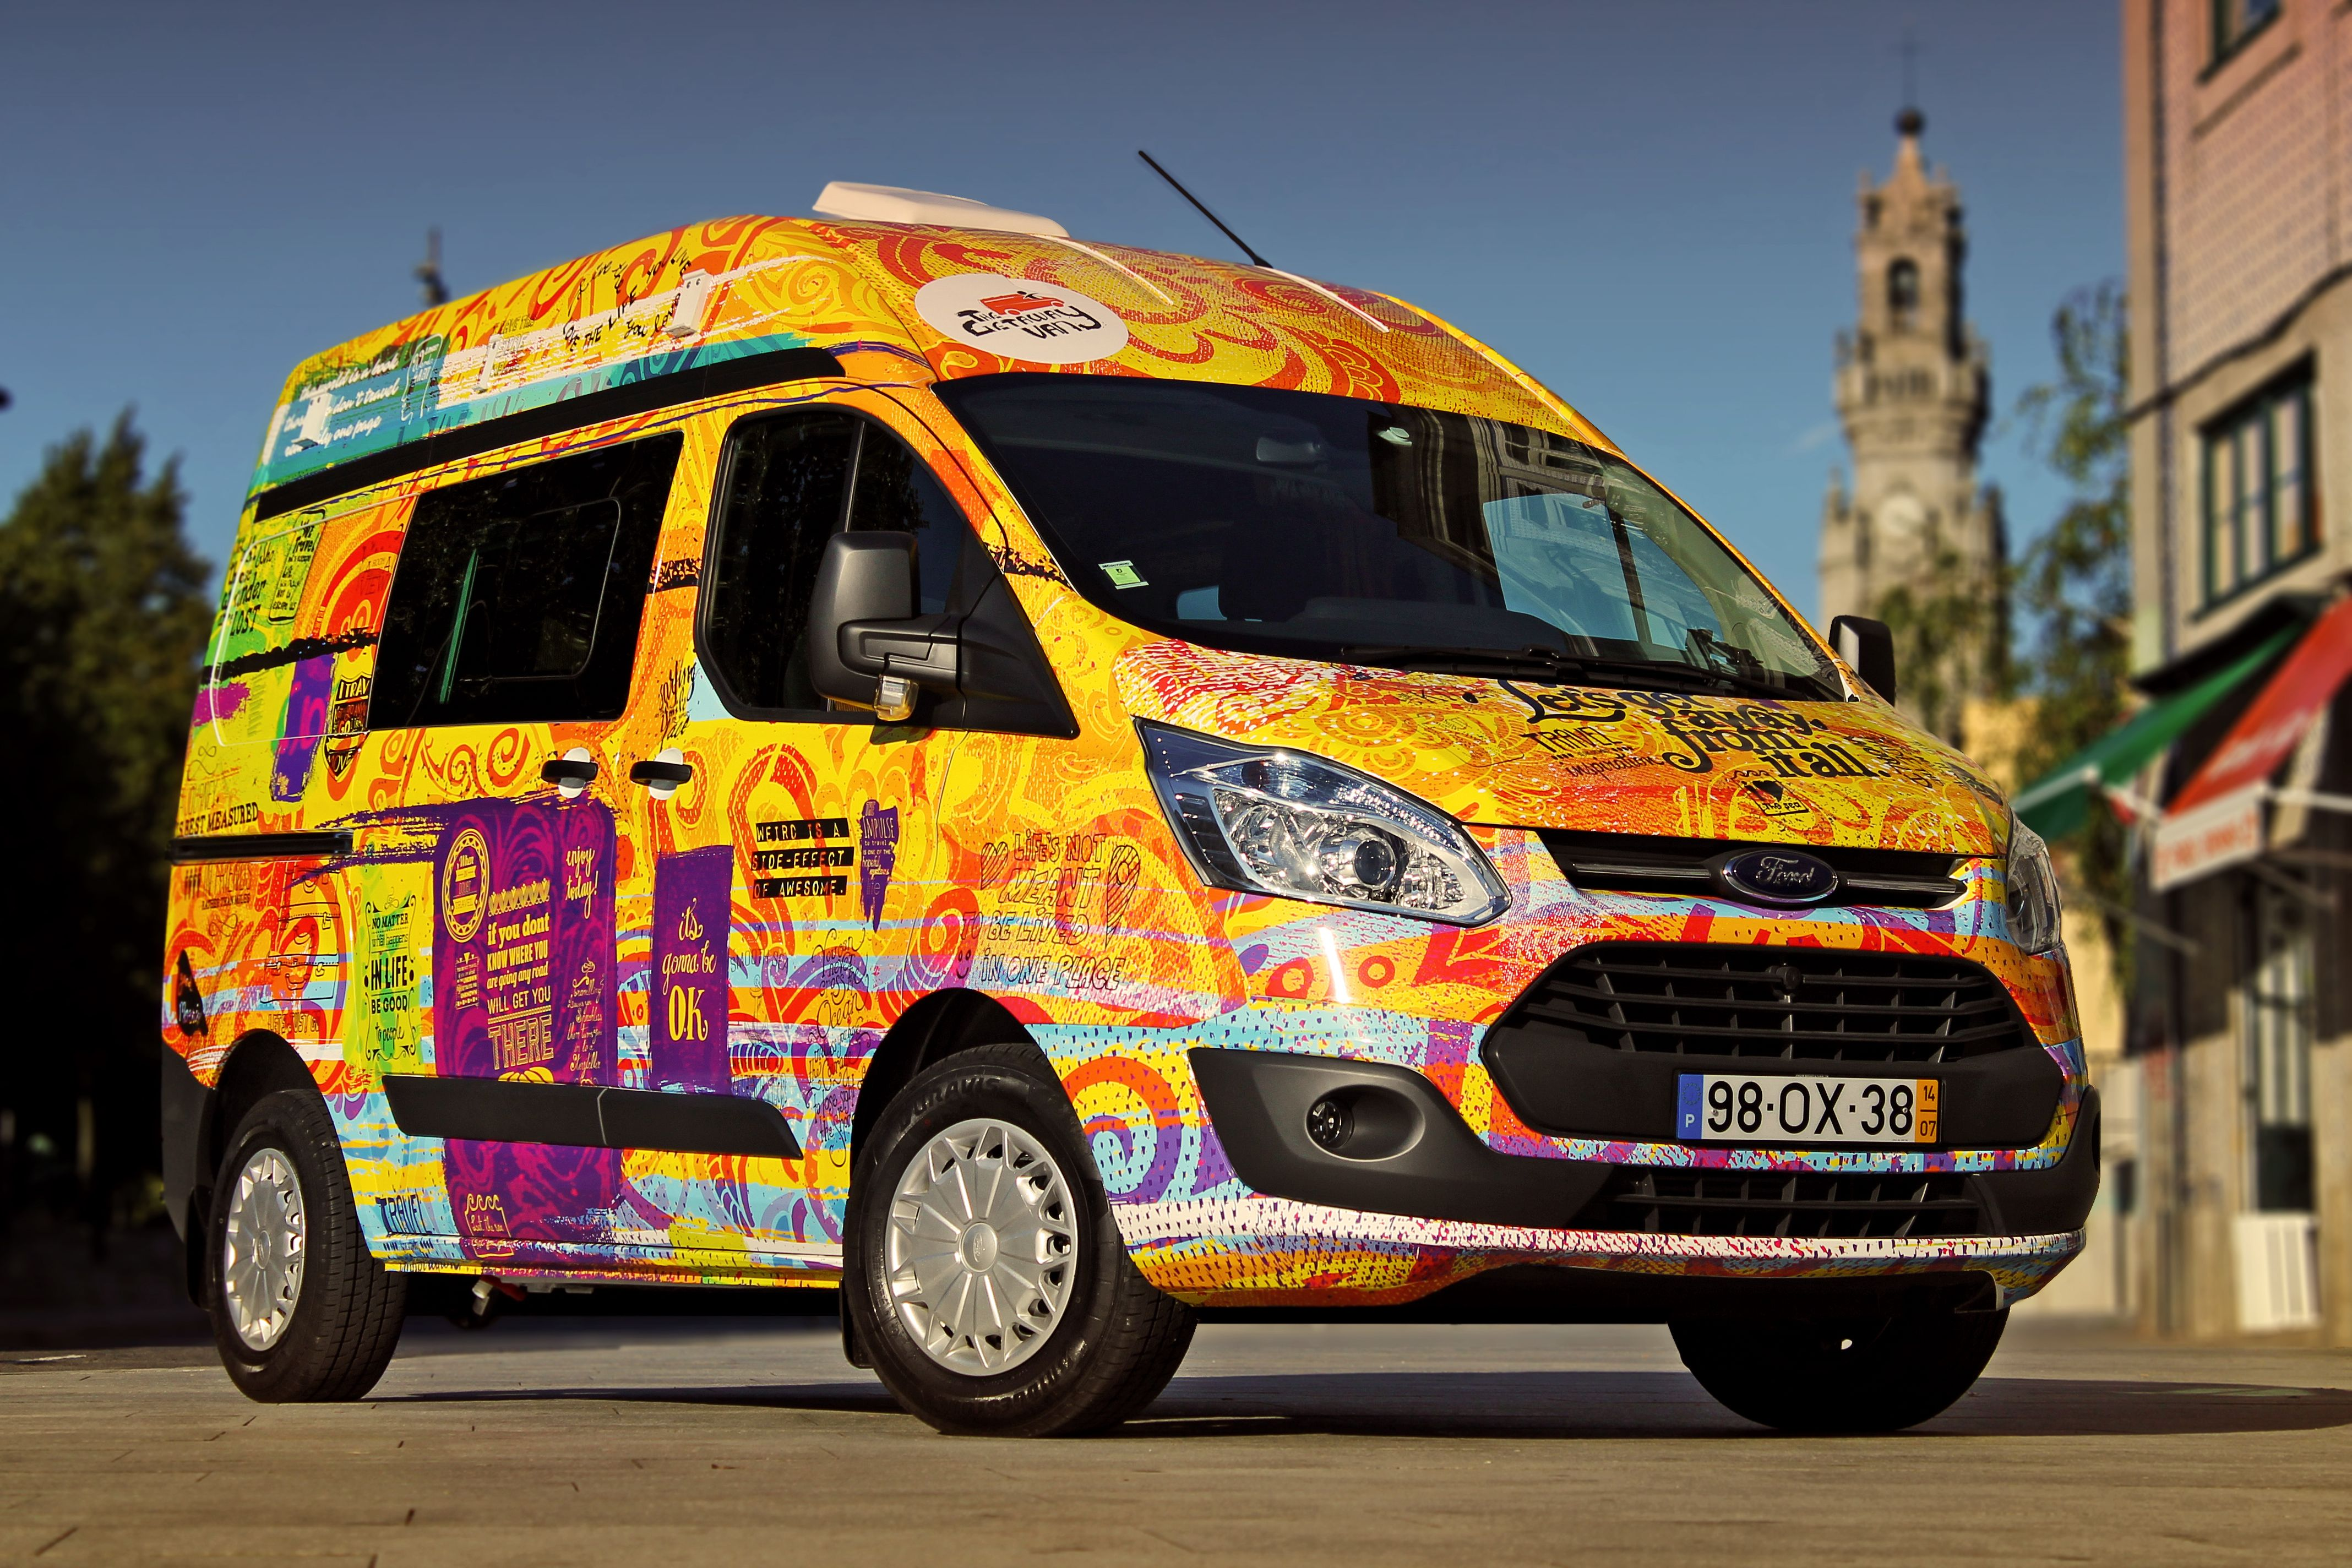 c56a7080b5 The Getaway Van - Low Cost Camper Vans for HIRE - Portugal - Porto . ...  HOW COOL IS THIS ! !